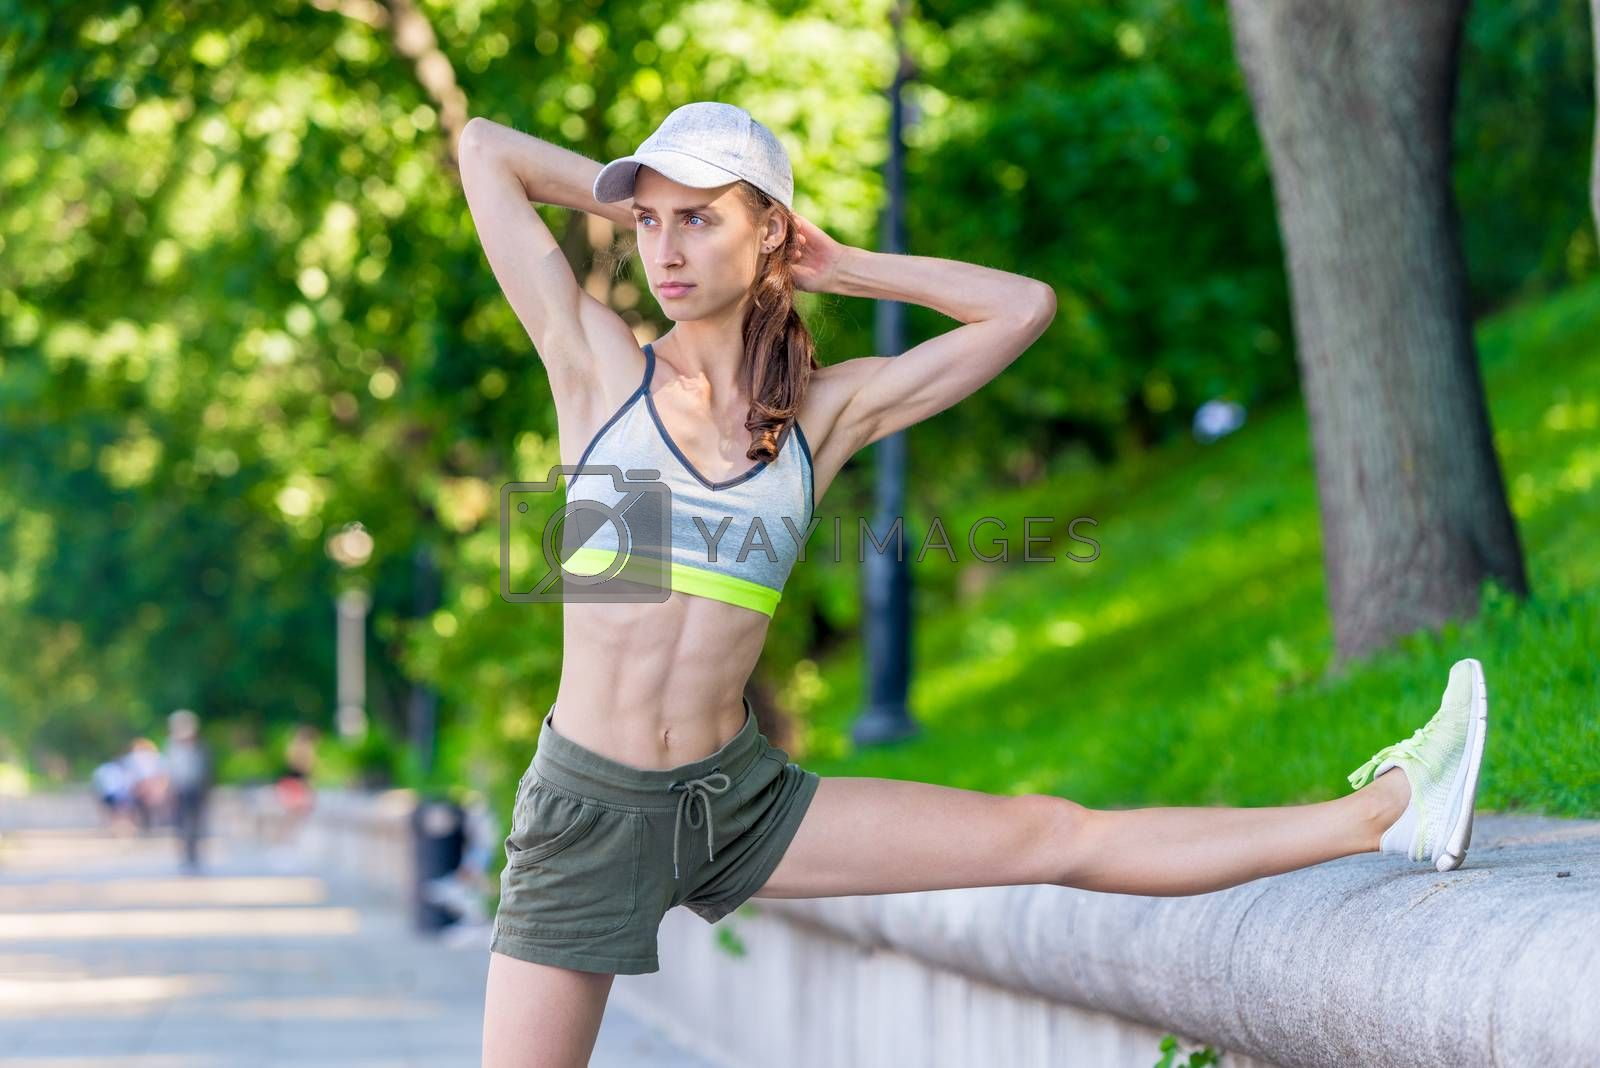 slender athletic woman warming up before jogging in a city park by Labunskiy K.